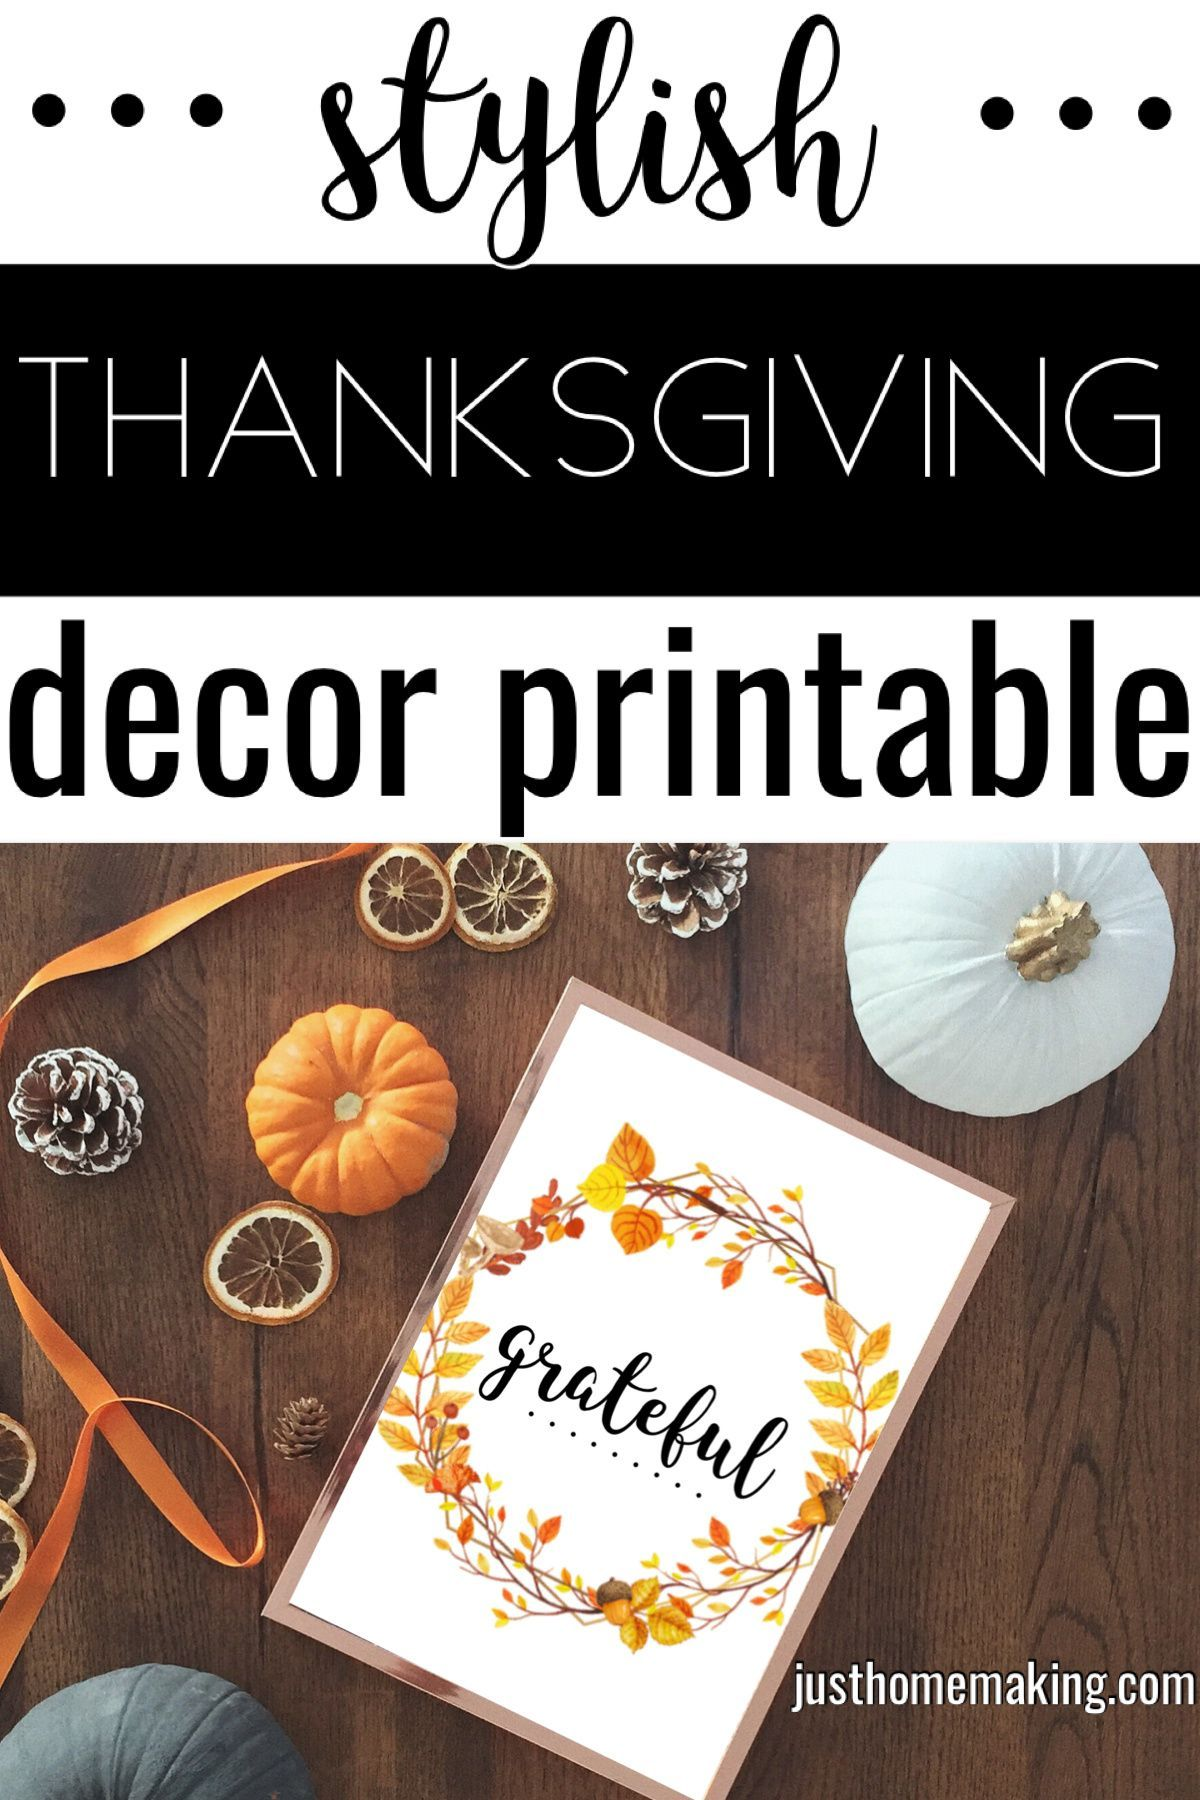 Beautiful Fall Printables For Home In 2020 Thanksgiving Decor Printables Fall Printables Spring Cleaning Hacks